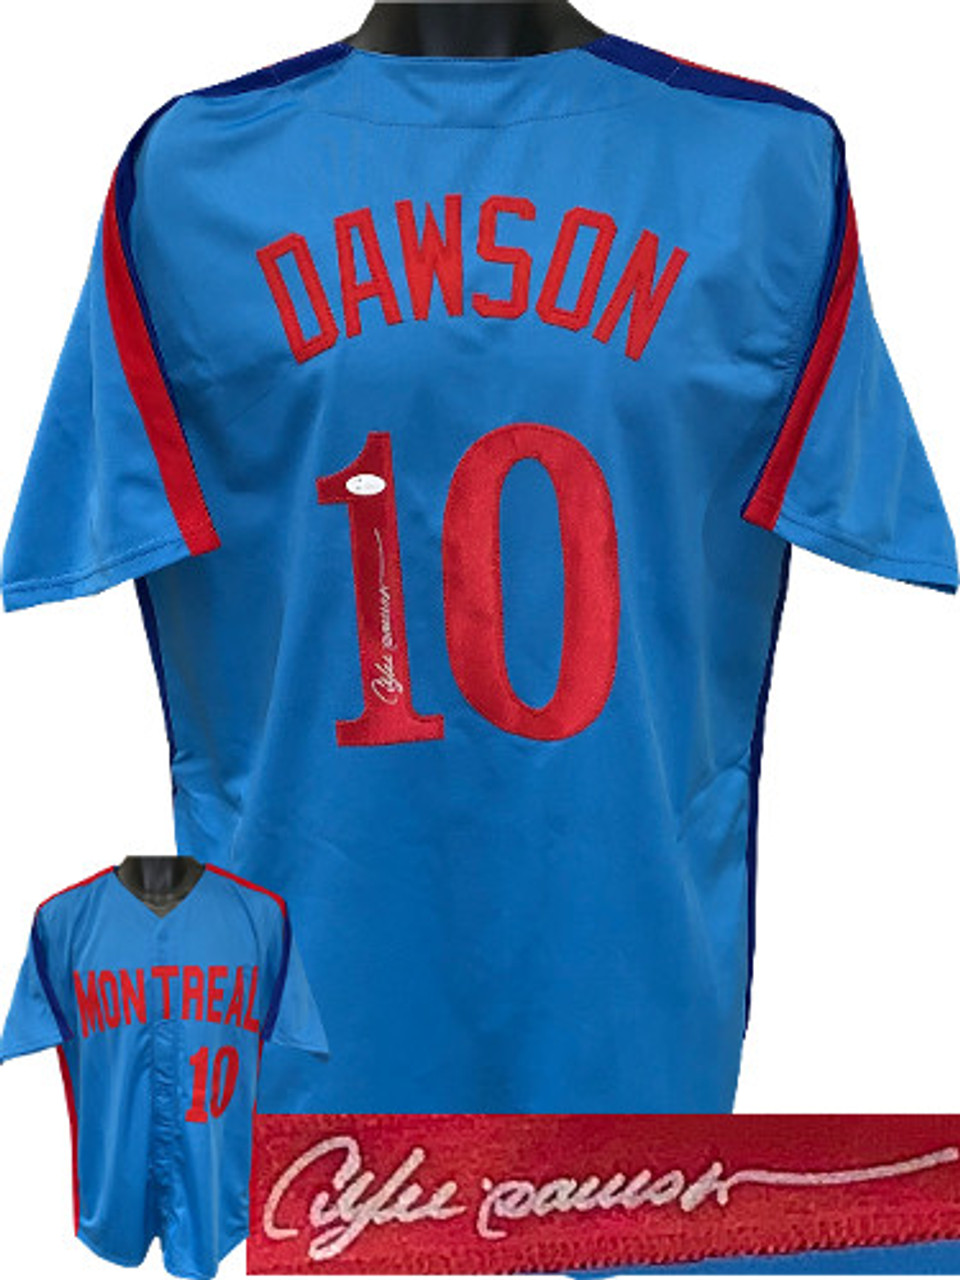 size 40 1c797 a664e Andre Dawson Chicago Cubs Autographed Blue Throw Back Custom Stitched Pro  Baseball Jersey XL - JSA Witnessed Hologram